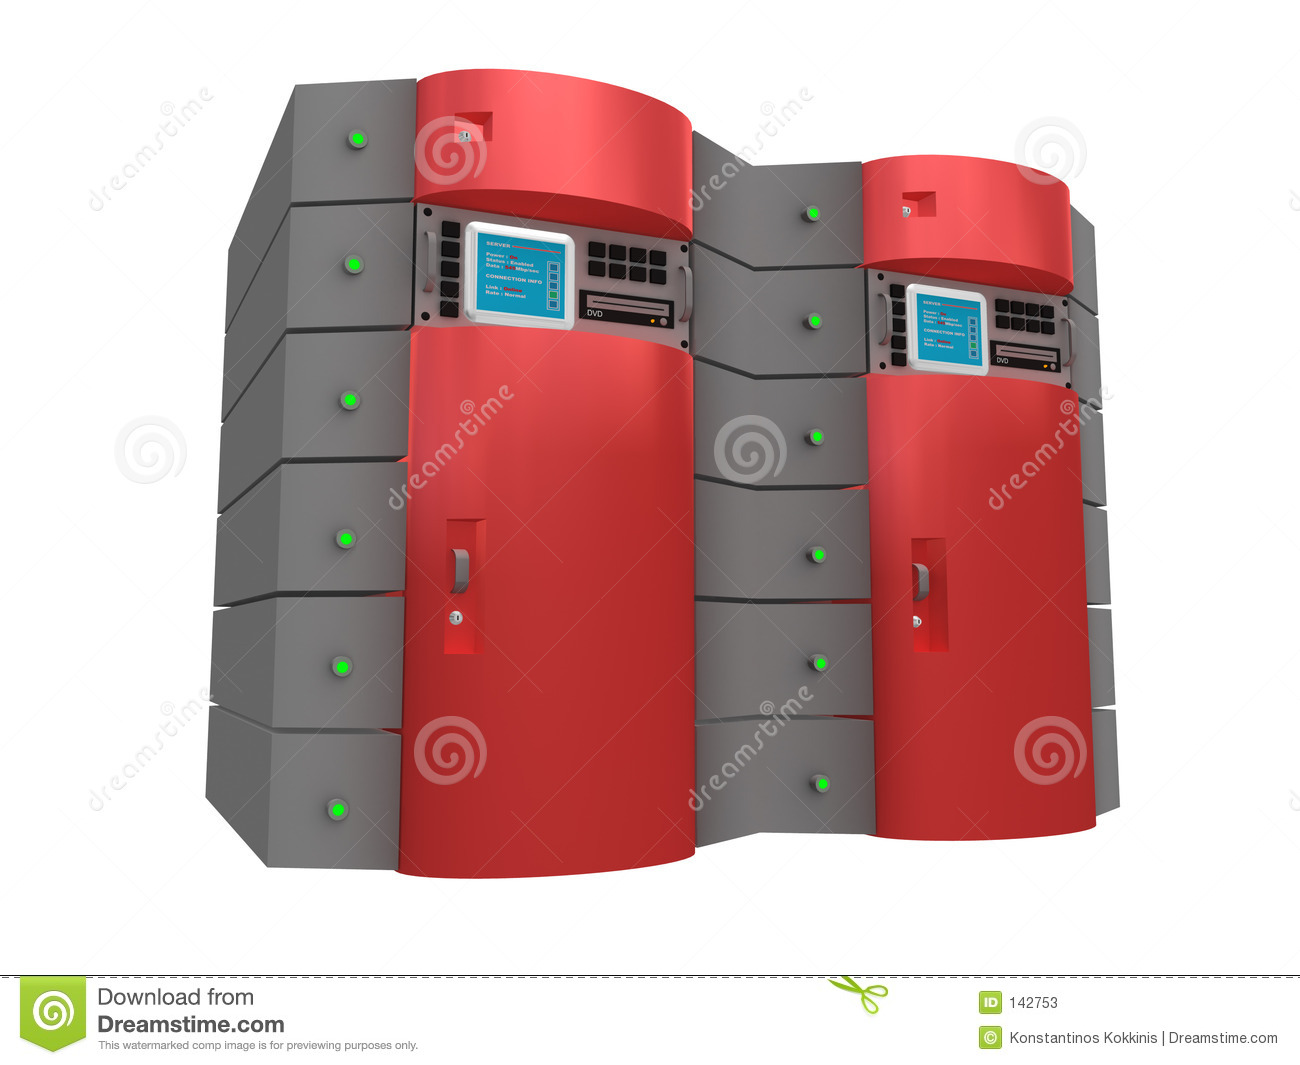 Roter Server 3d